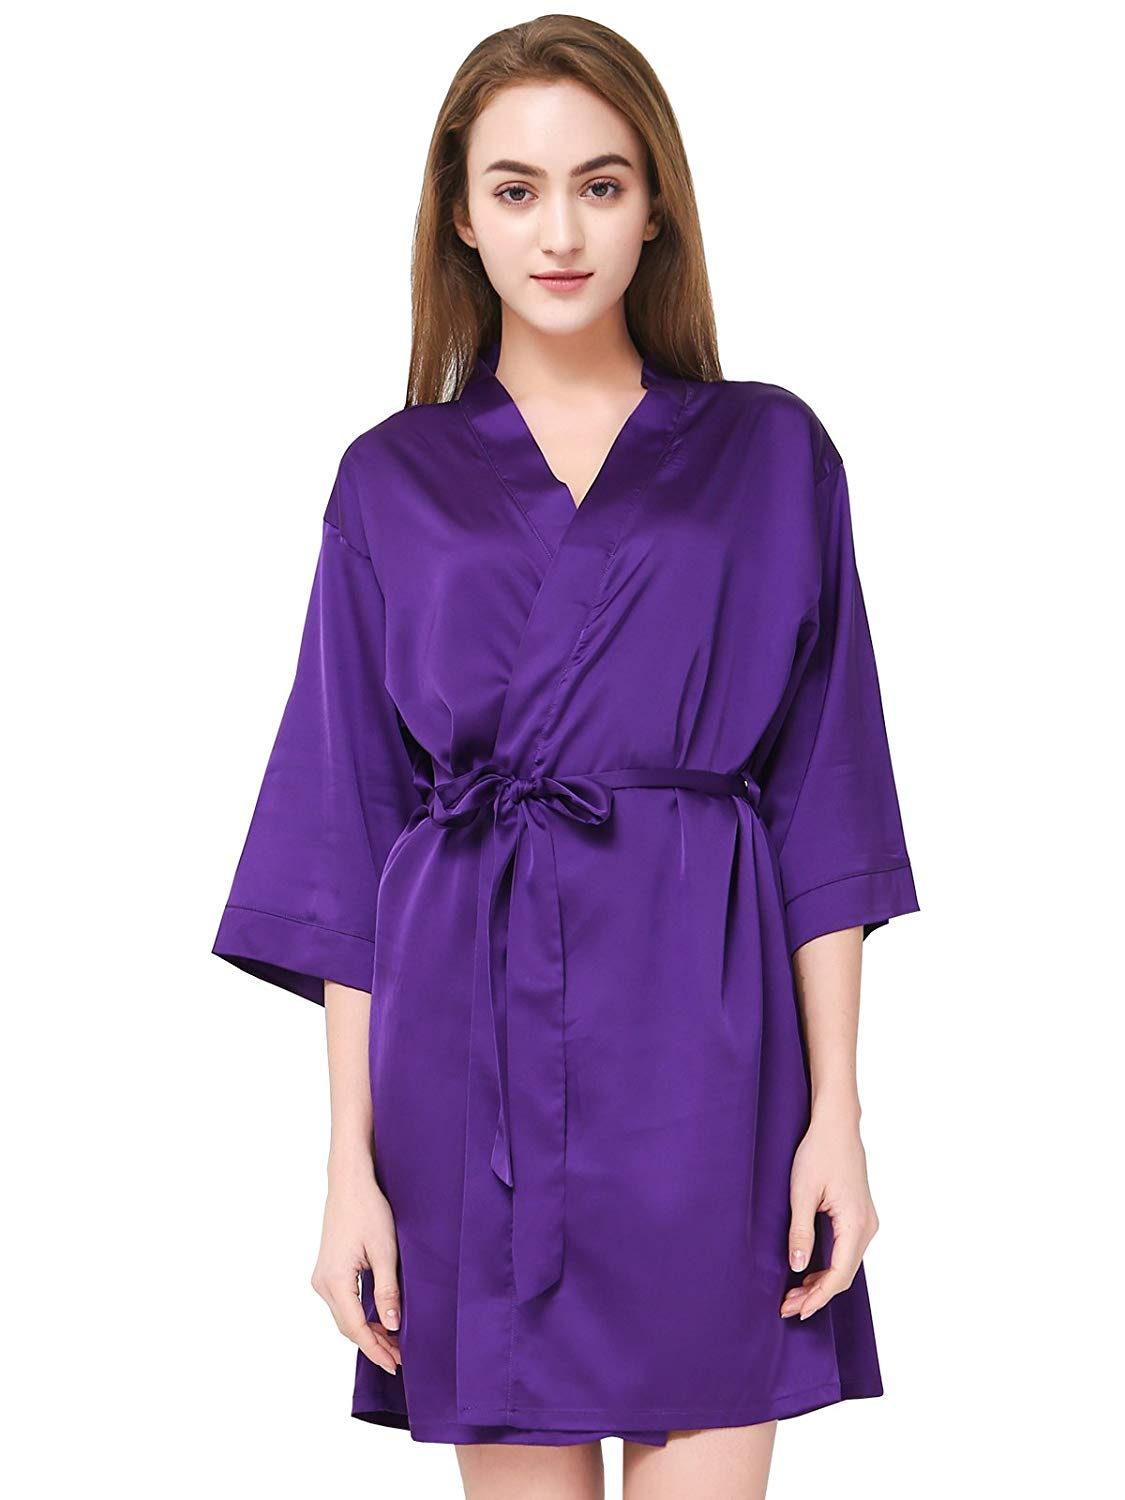 2606d0b64b Get Quotations · PROGULOVER Women s Sexy Satin Kimono Robe for Bride  Bridesmaid Mrs Robe Dressing Gown Spa Robe Bathrobe